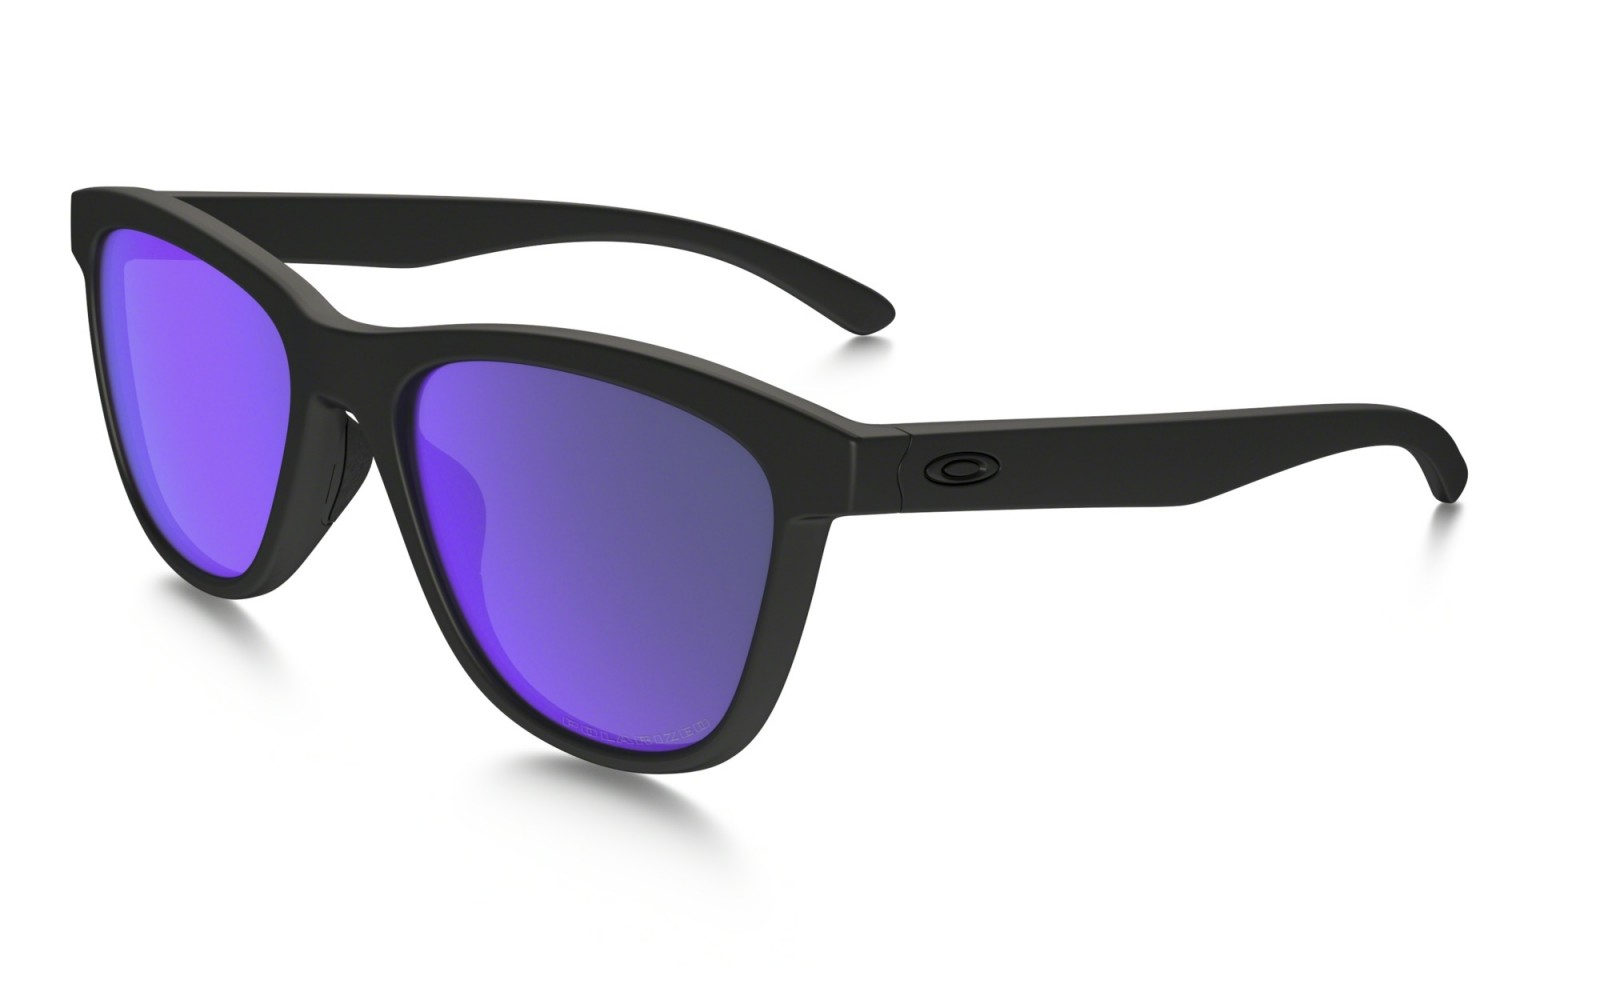 Oakley Moonlighter - Matte Black / Violet Iridium Polarized - OO9320-09 Zonnebril